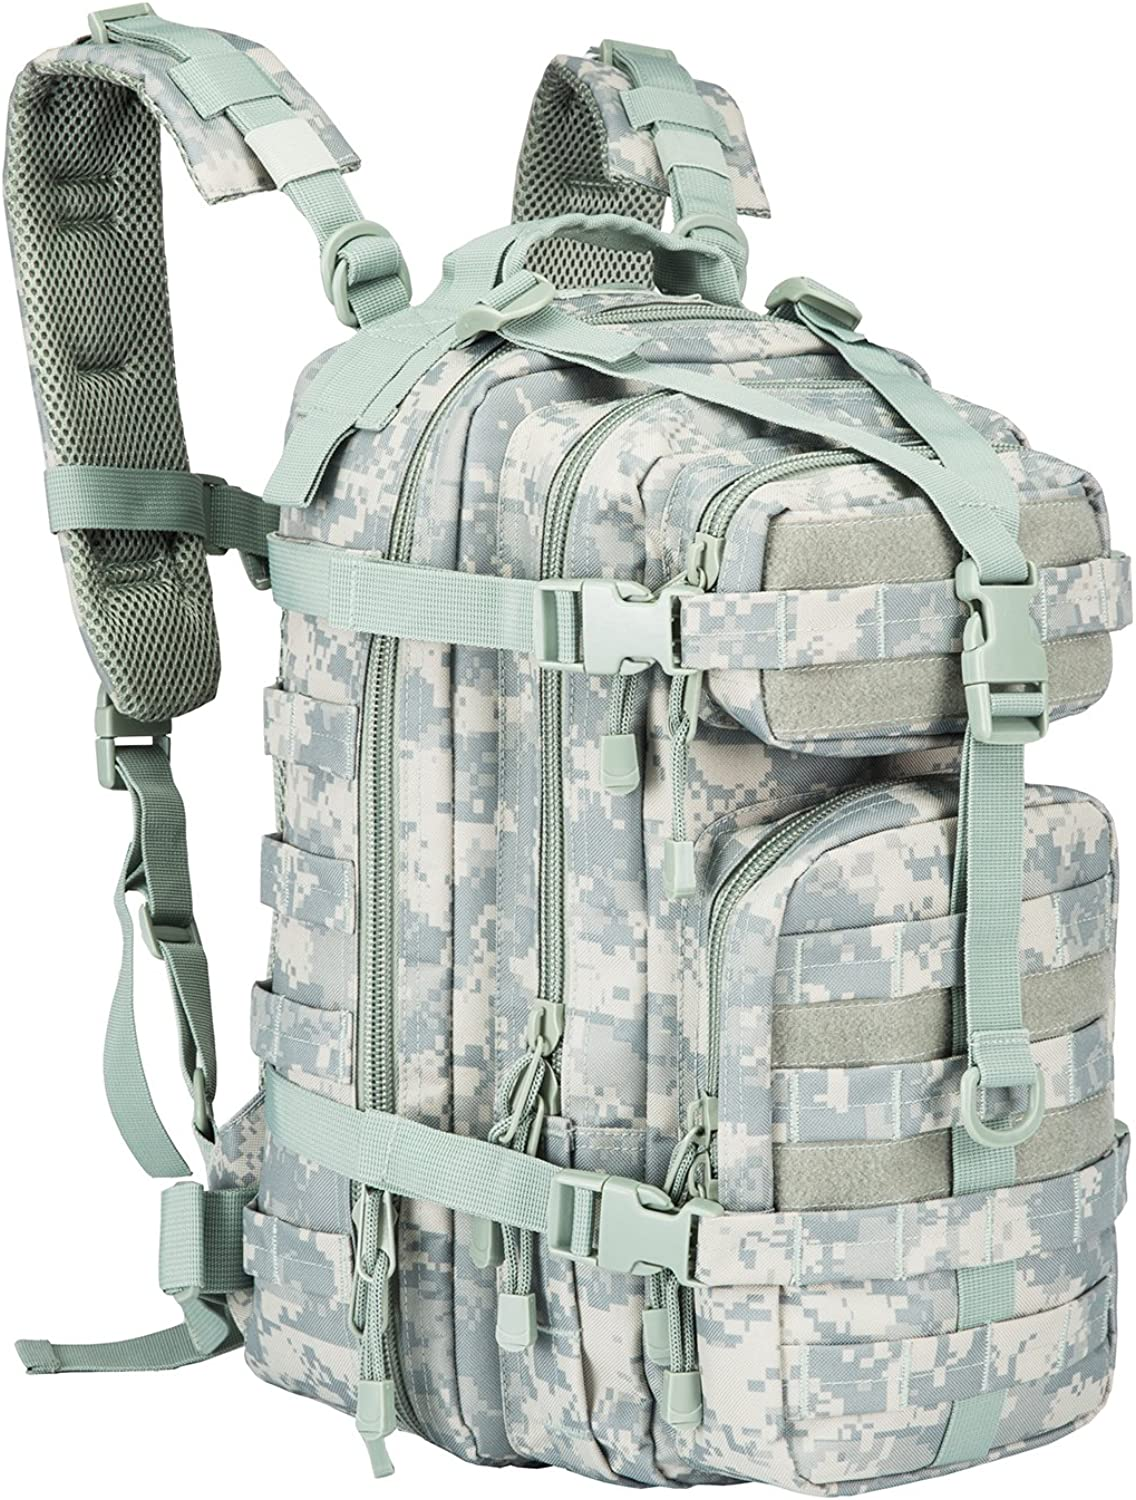 LHI Small Military Backpack Tactical 30L Back Pack for Men and Women Heavy Duty Army Assault Outdoor School Daypack Tan